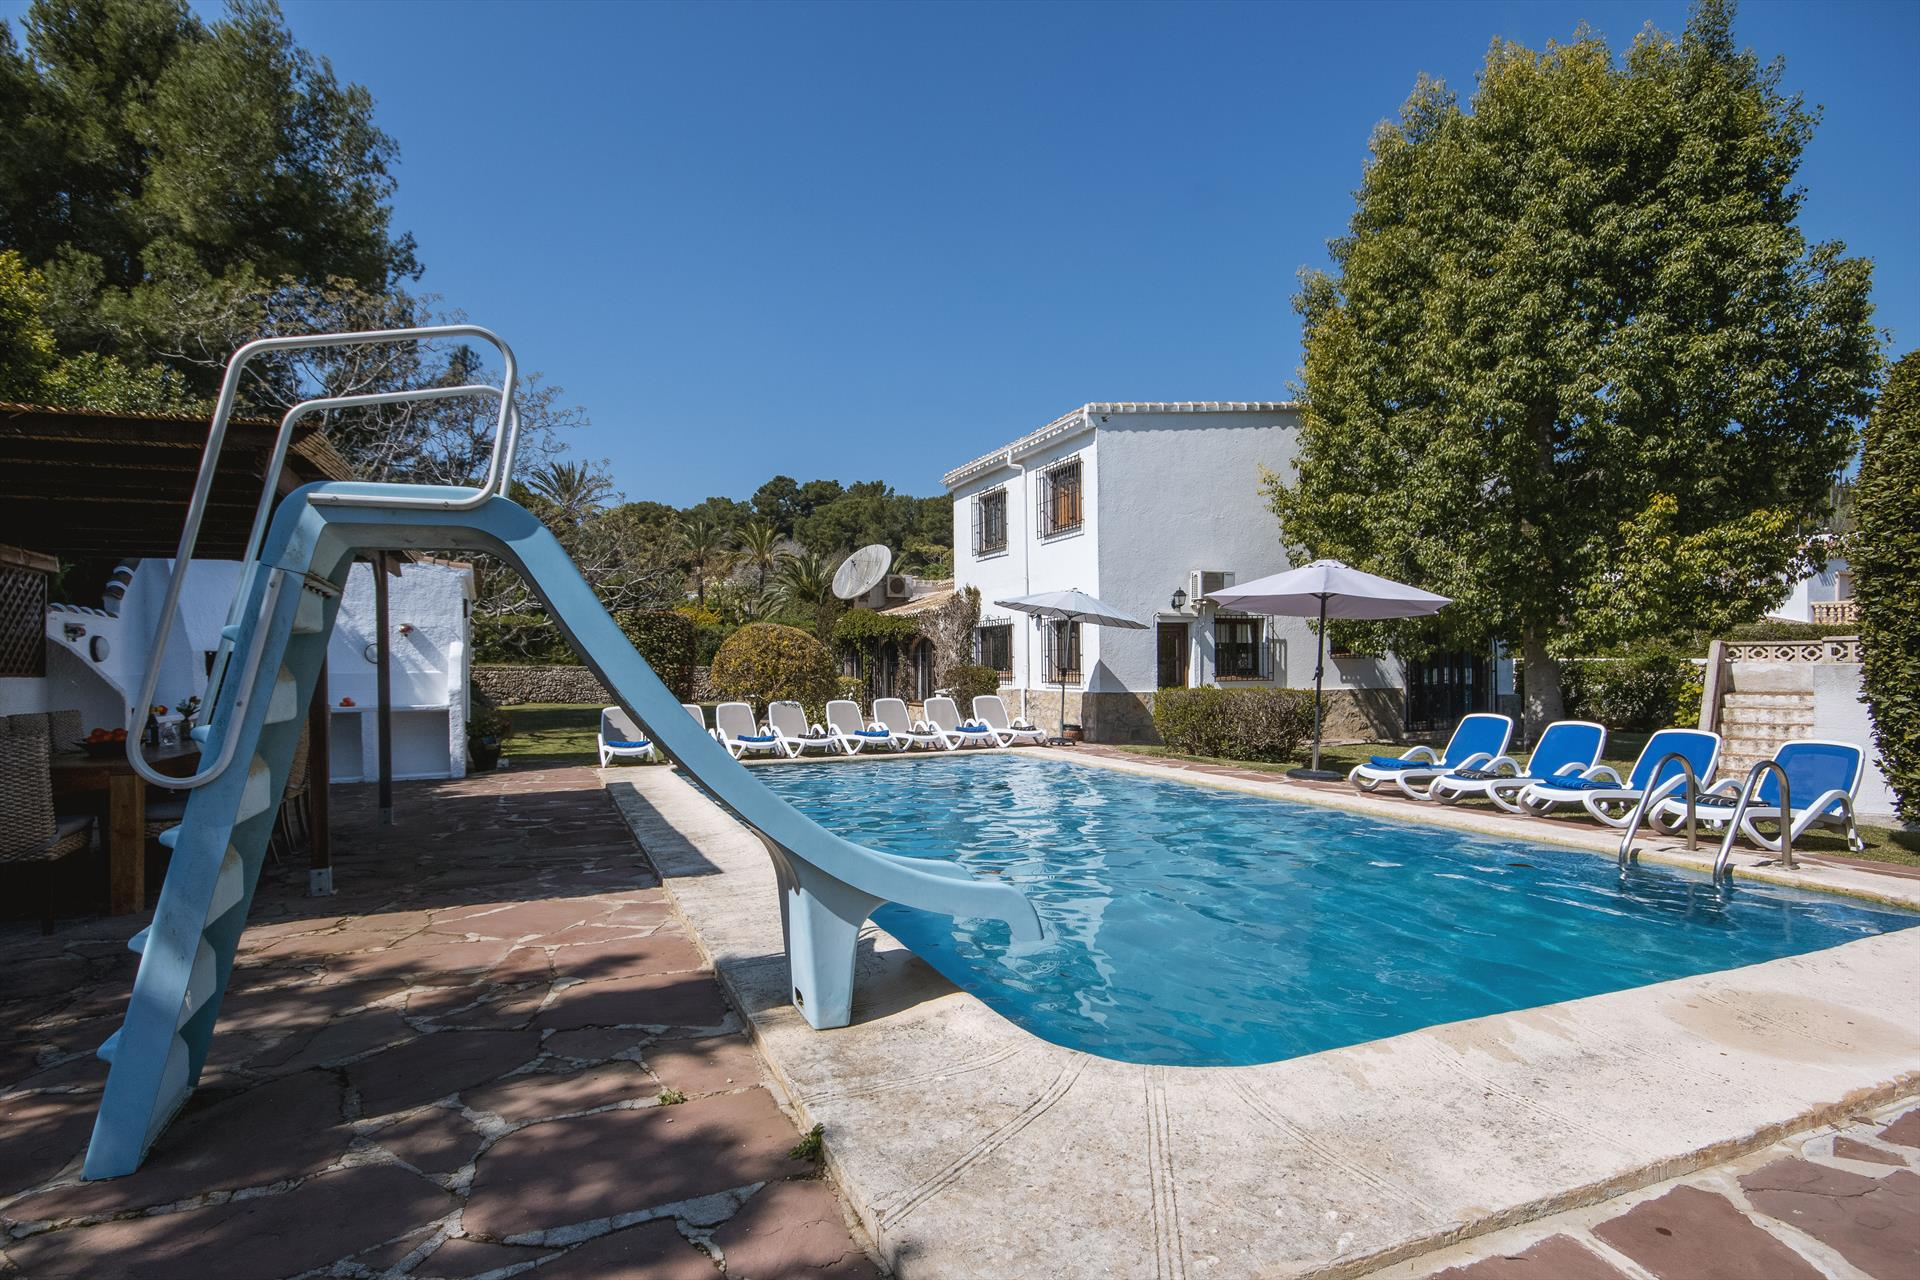 Villa Escocia 6 pax, Large and comfortable villa in Javea, on the Costa Blanca, Spain  with private pool for 6 persons.....